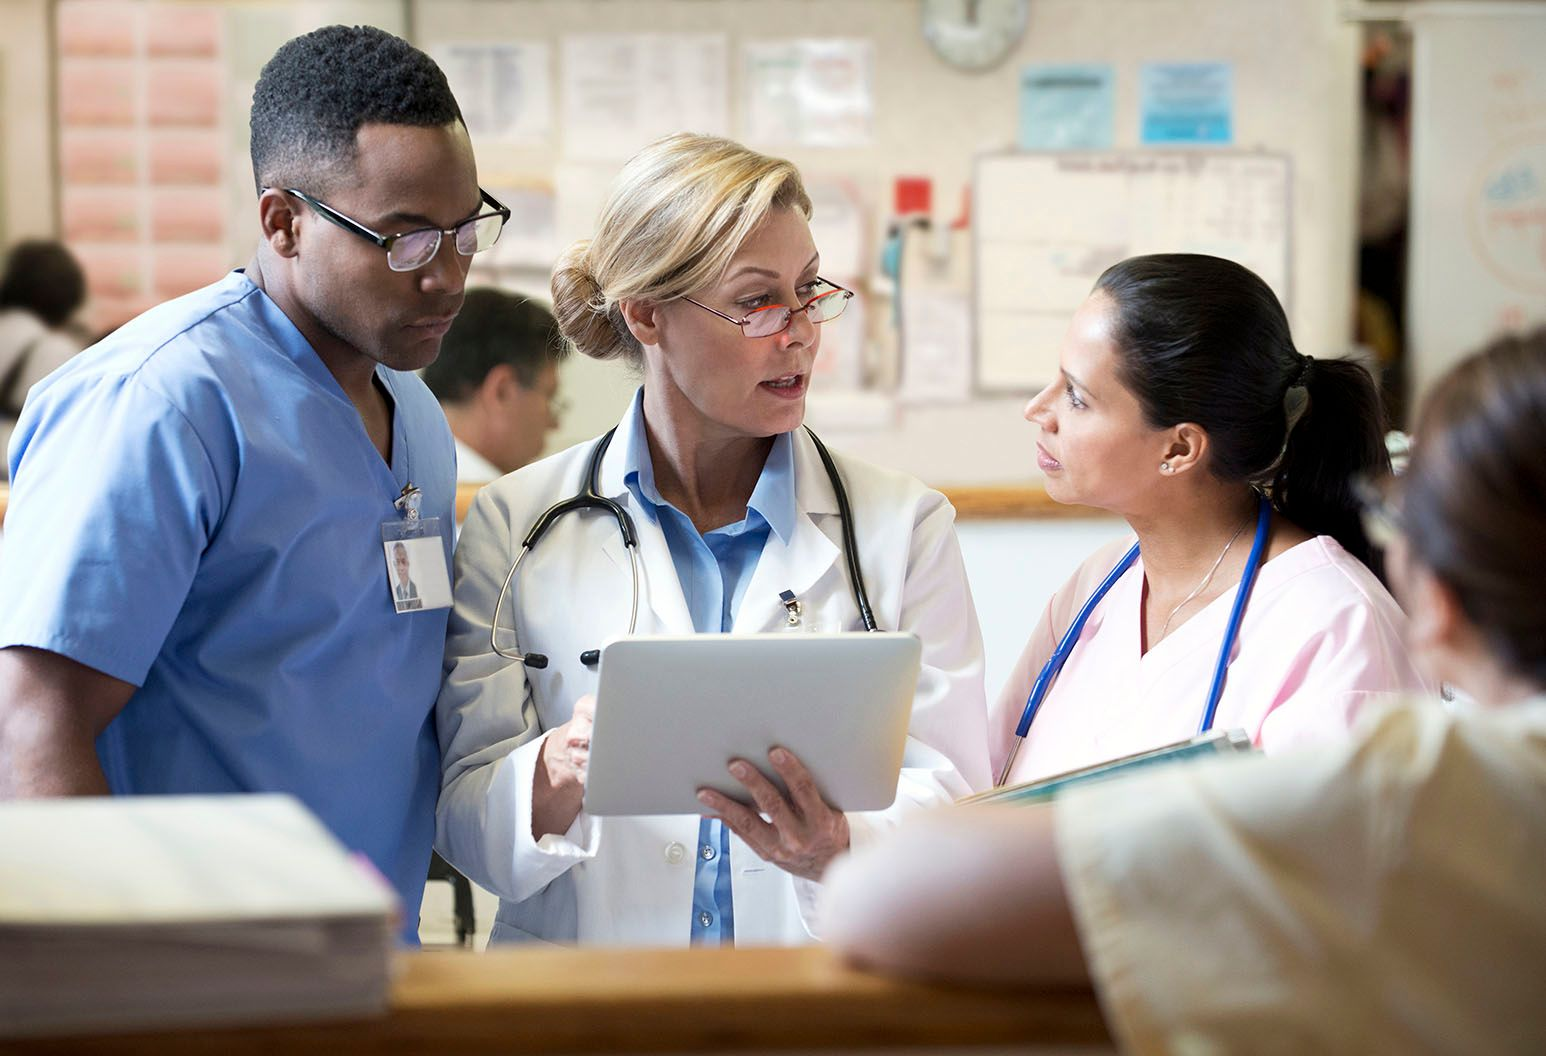 Three doctors discuss an emergent situation. One of them is speaking and pointing her the electronic tablet she is holding.